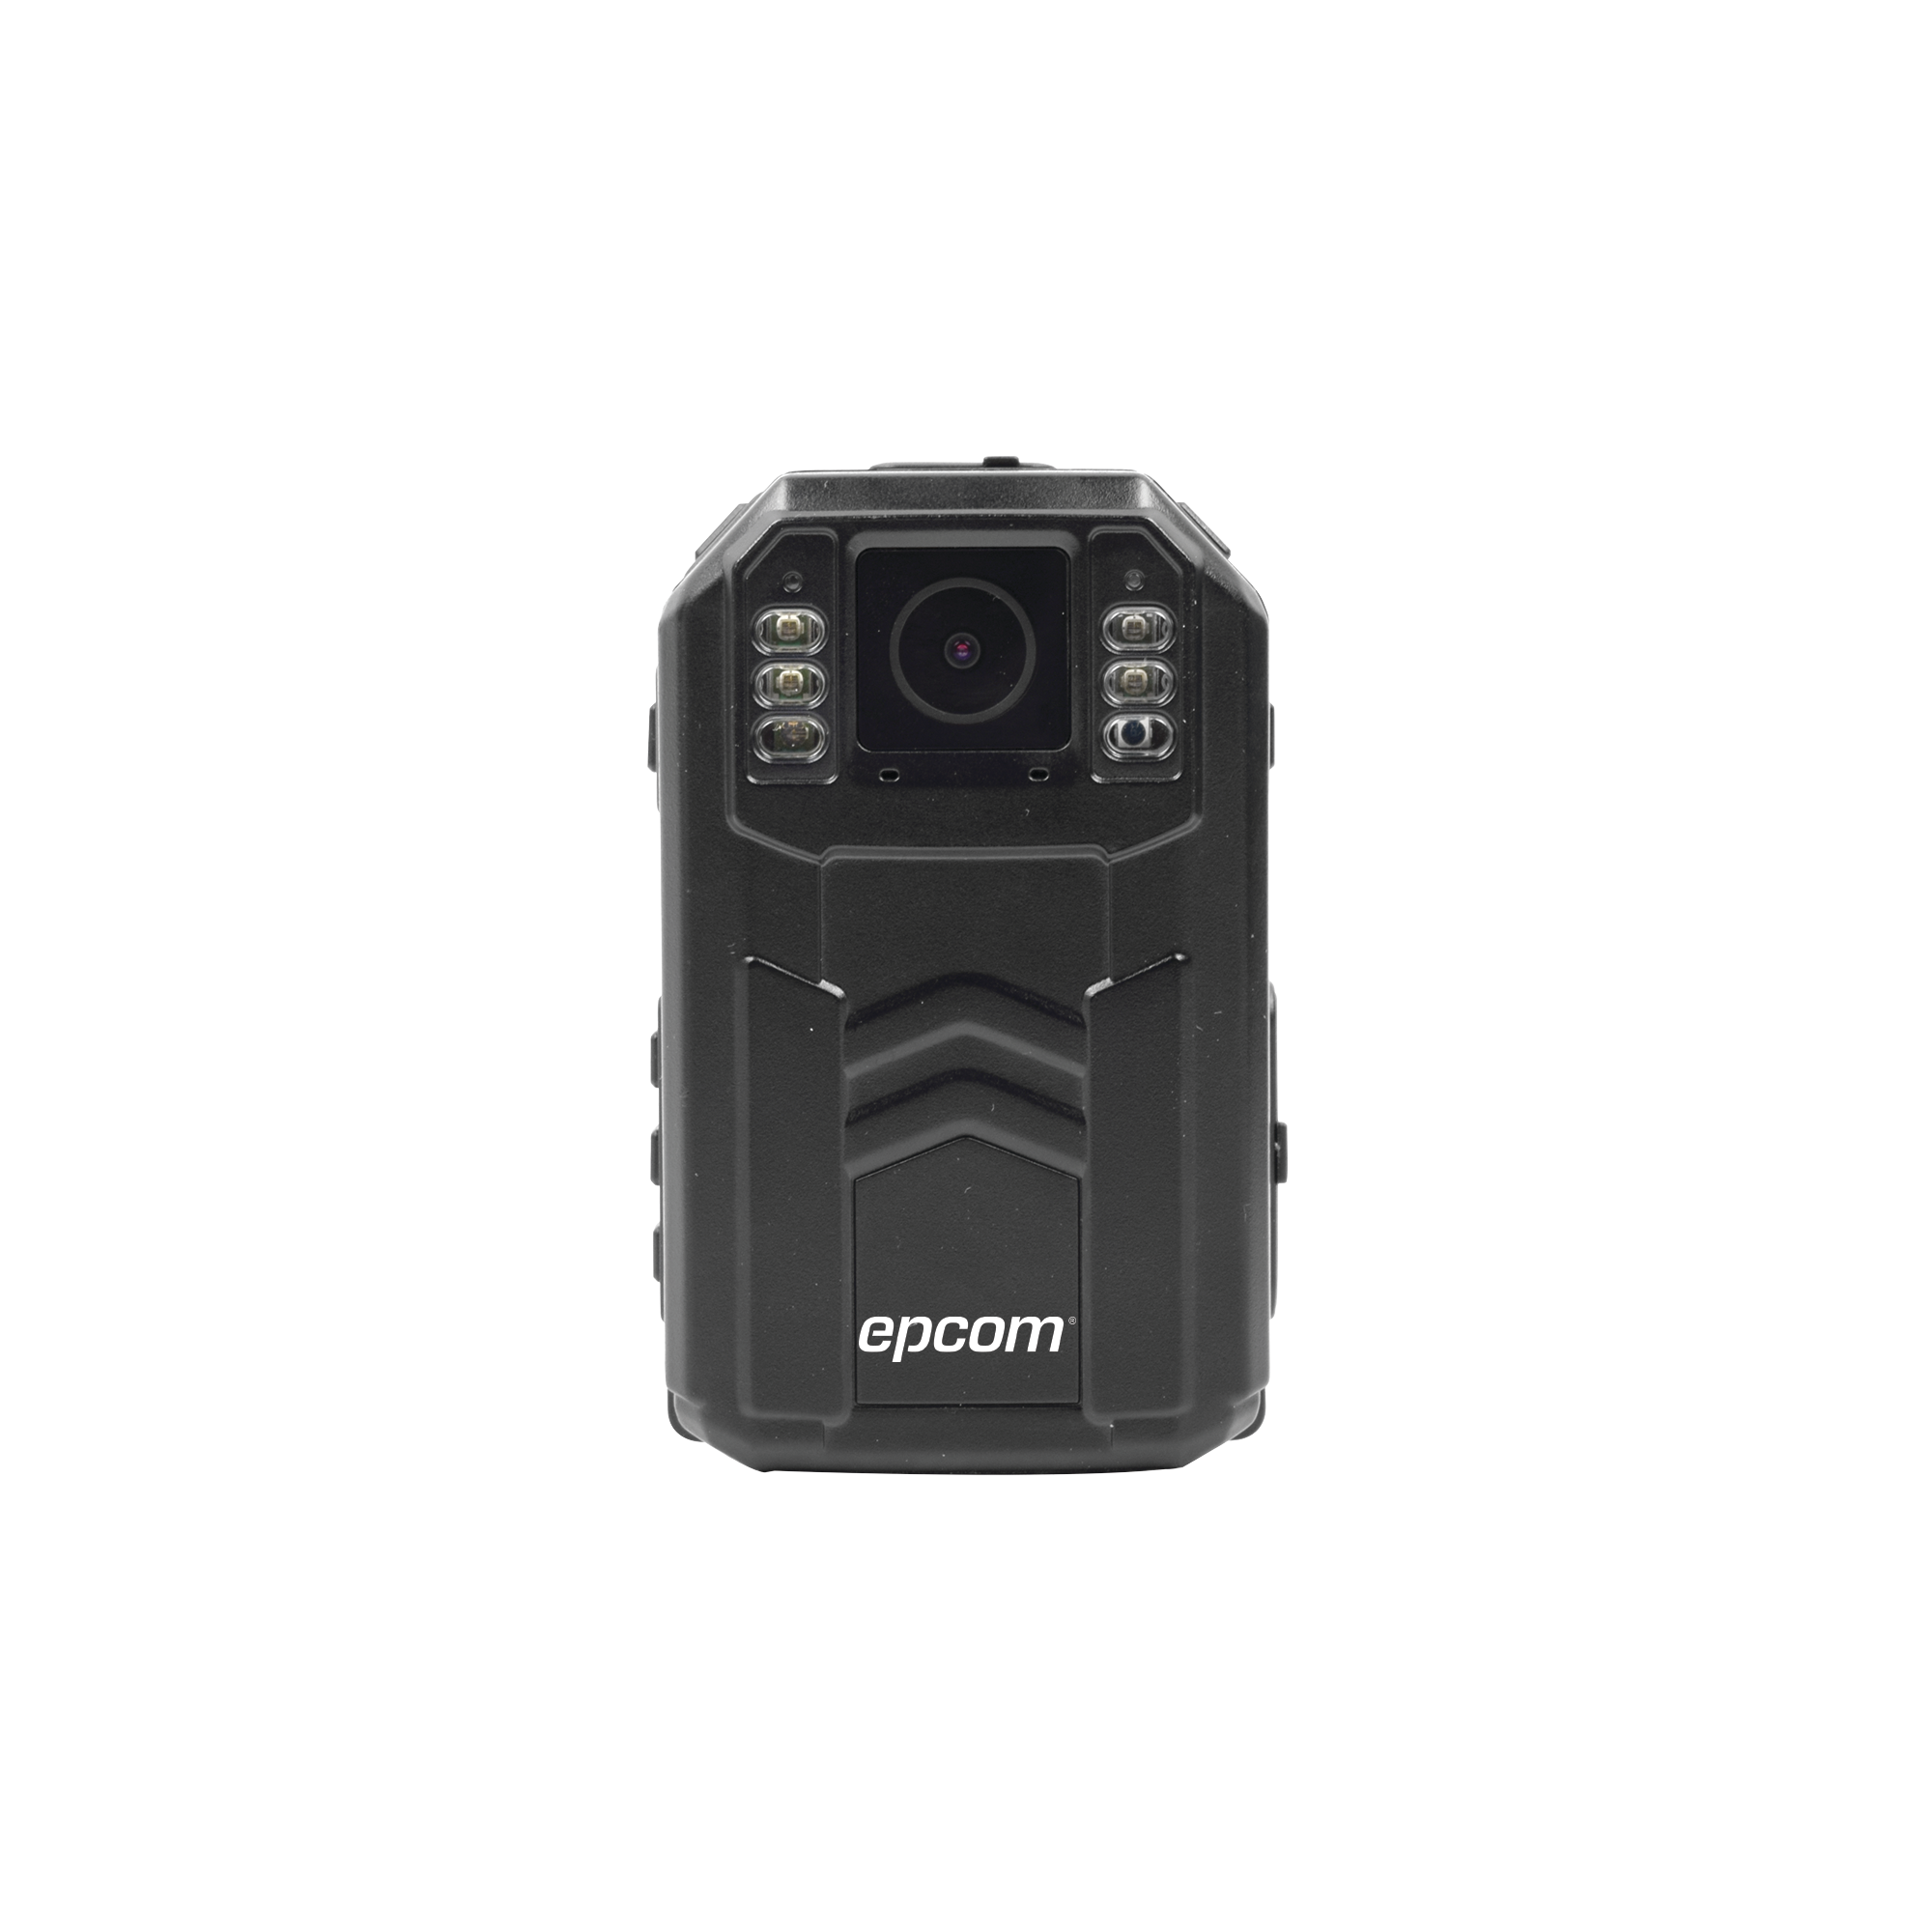 Body Camera para Seguridad, Hasta 32 Megapixeles, Video HD 1080P, Descarga de Video automática, Pantalla LCD